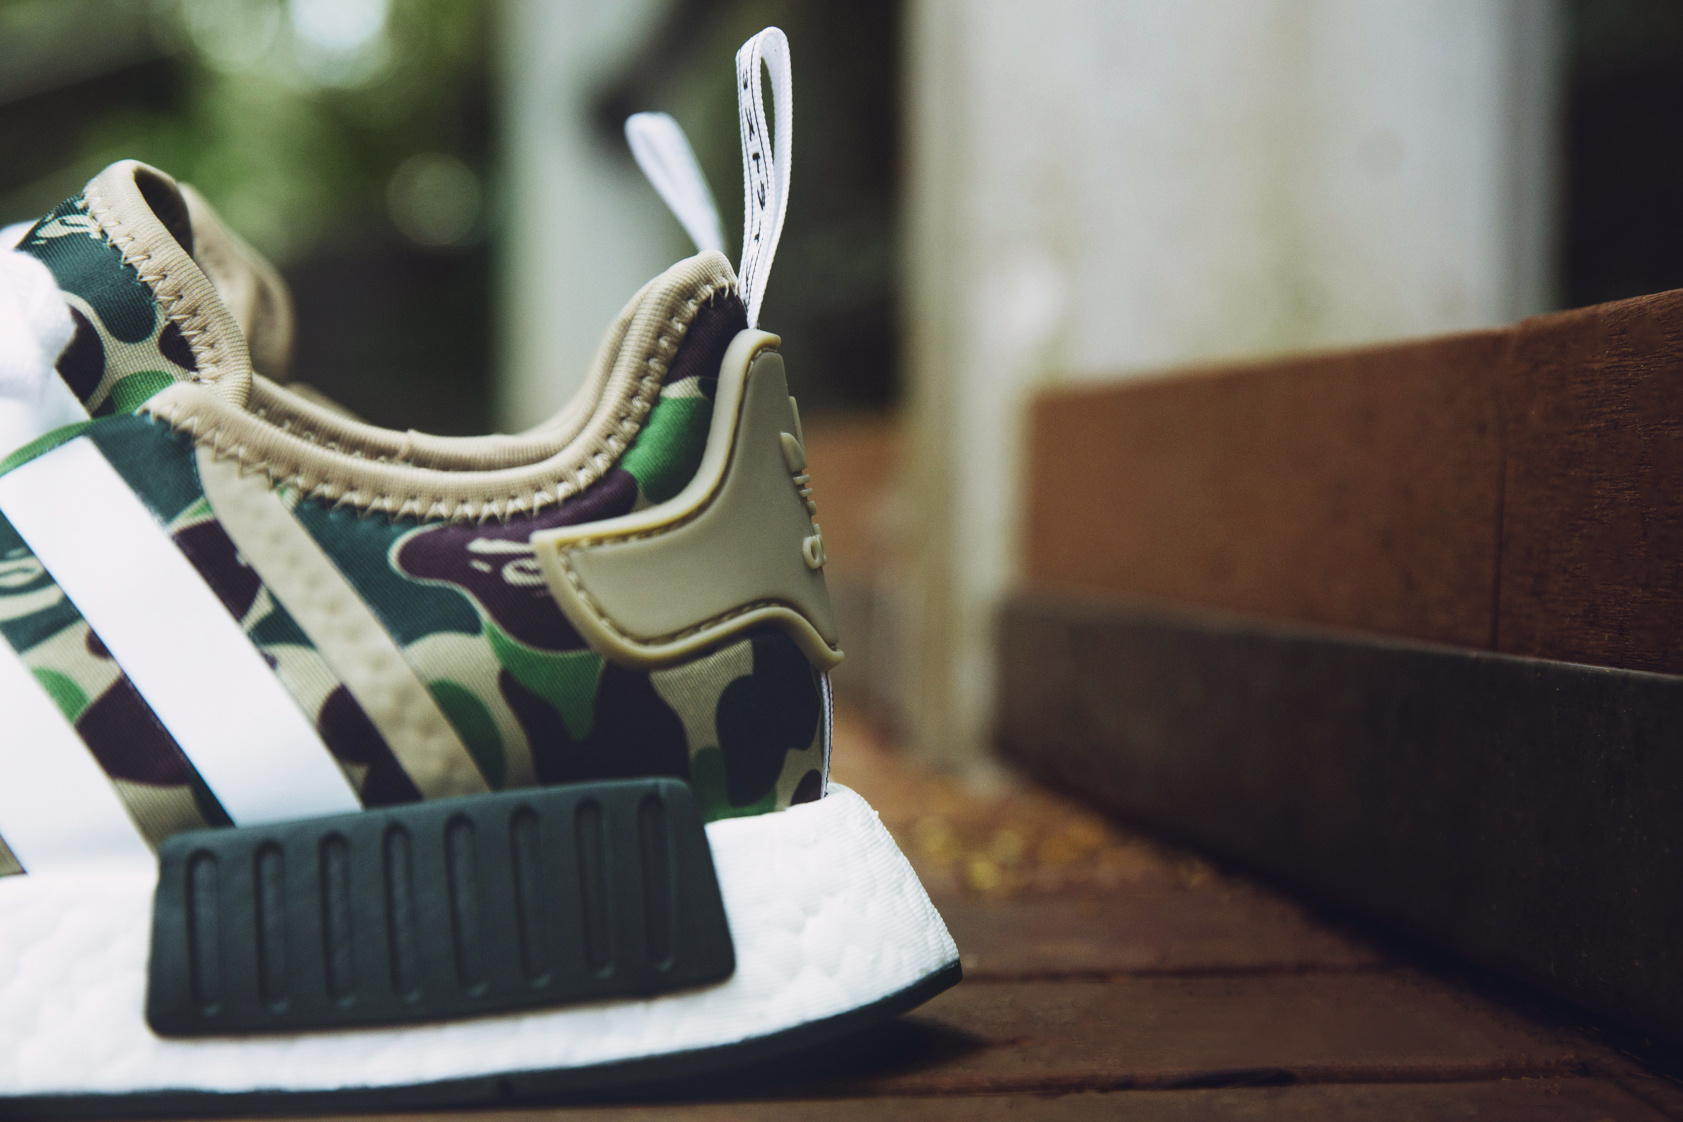 bape-x-adidas-originals-nmd-closer-look-5